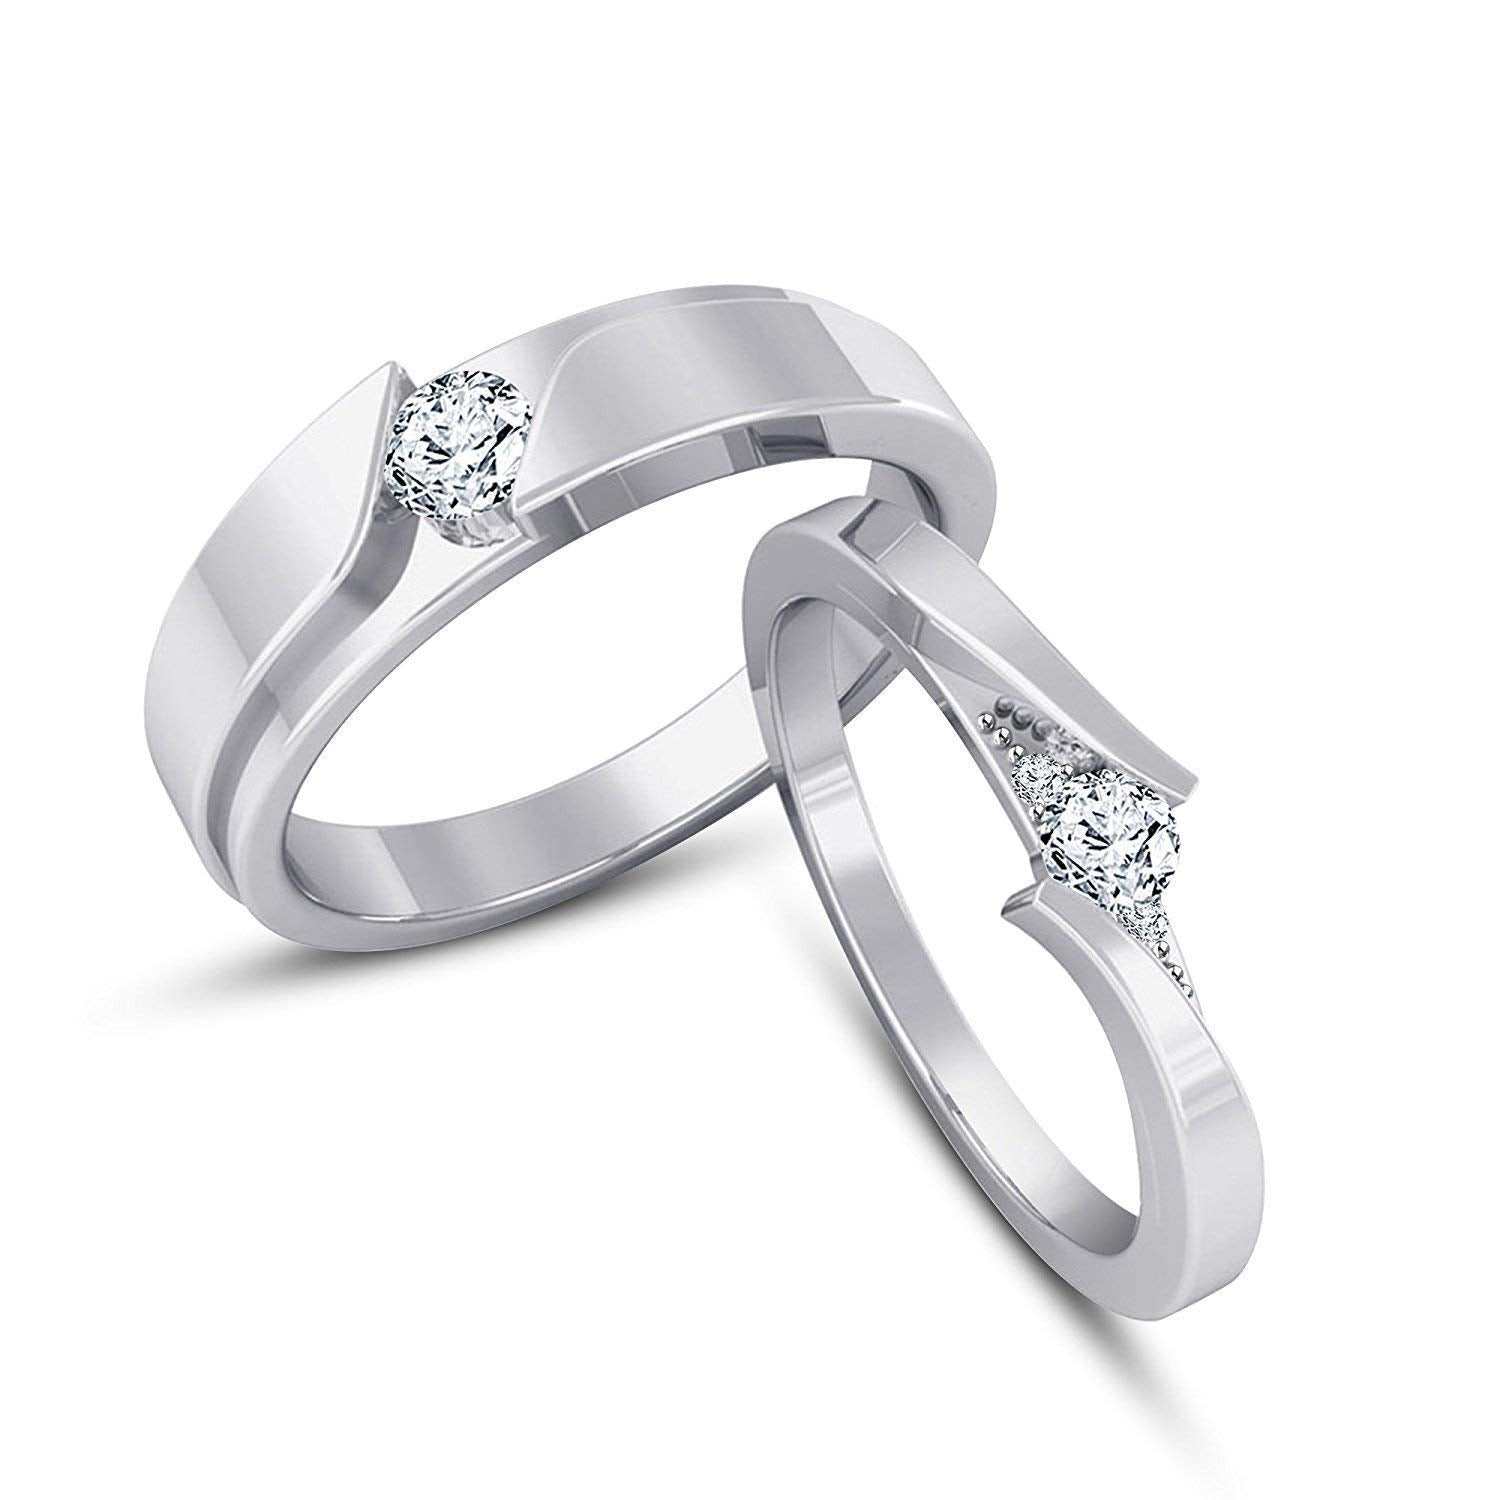 ATJewels 925 Silver Round White Gold Over Cubic Zirconia Elegant Couple Engagement Wedding Anniversary Ring For